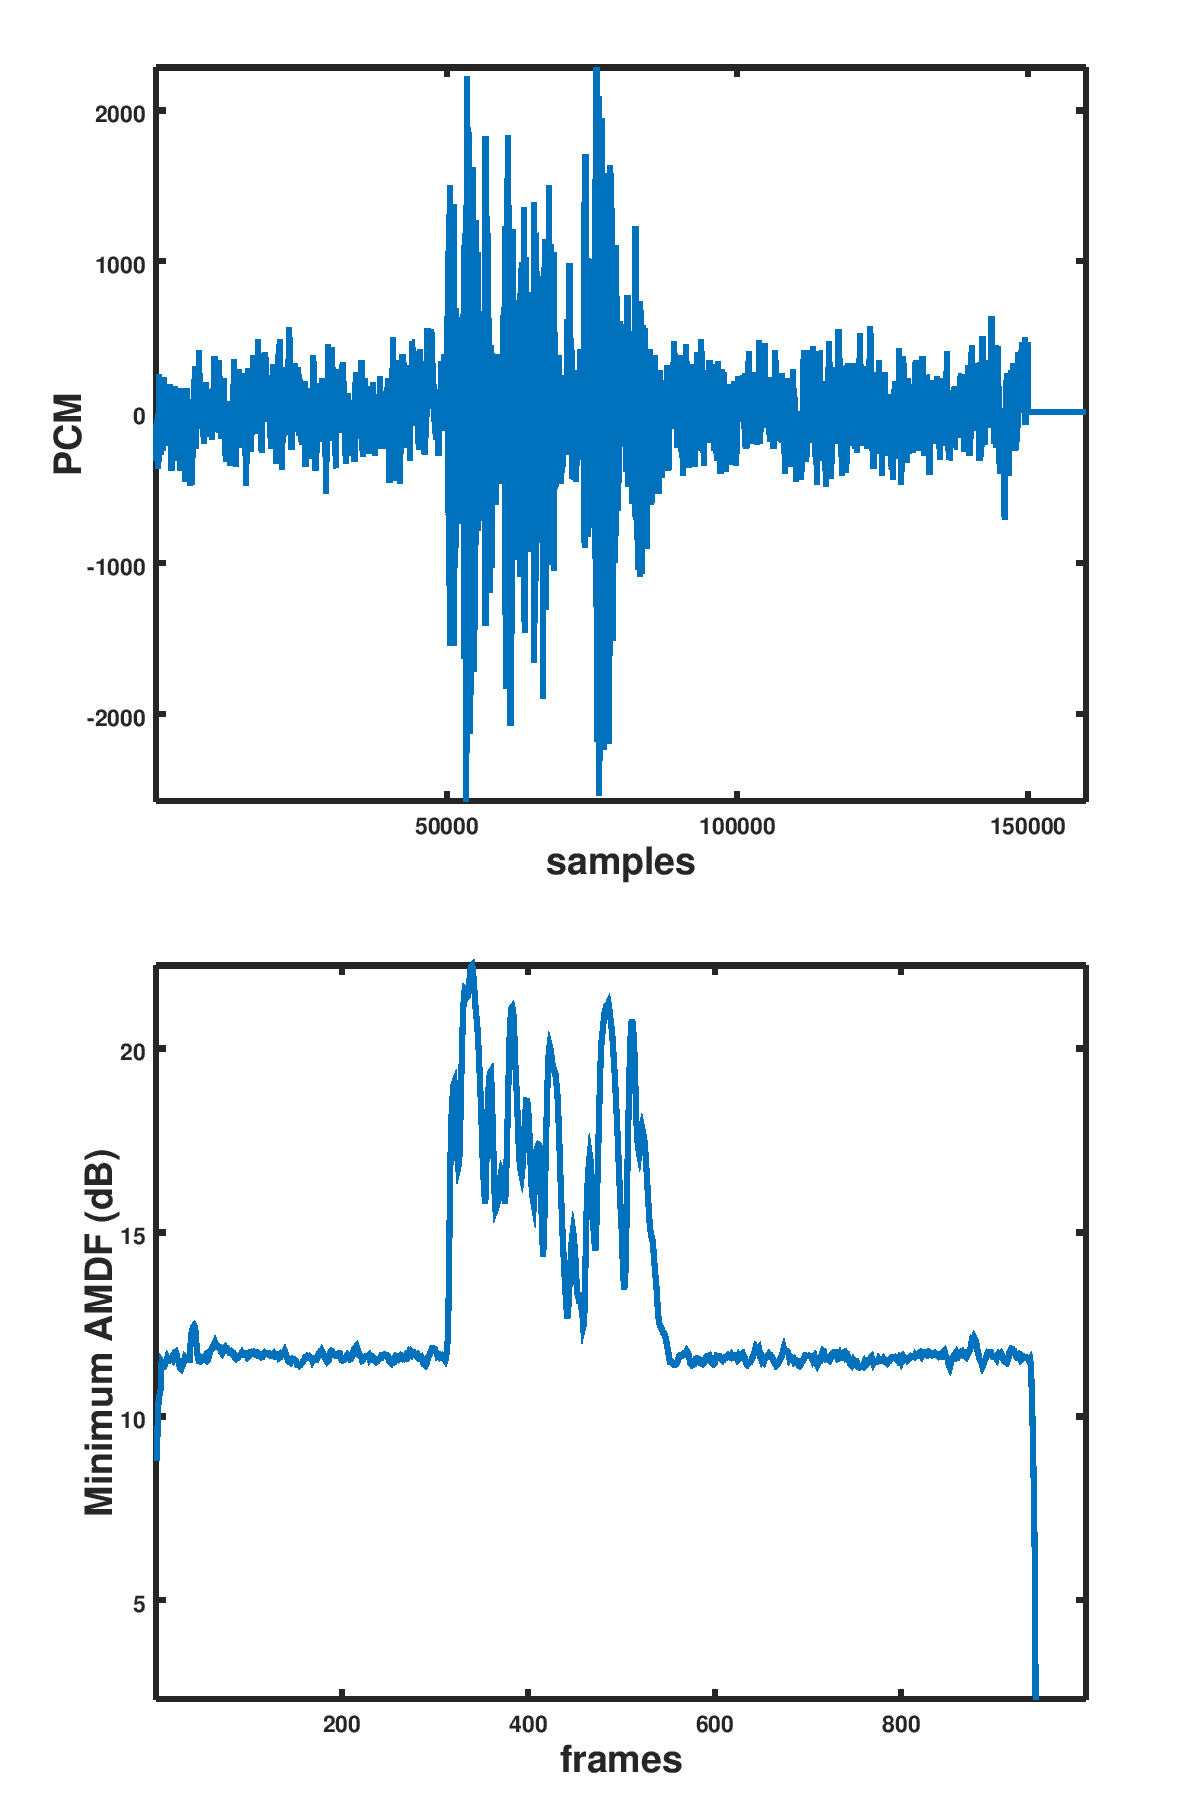 Pitch detection in speech using AMDF